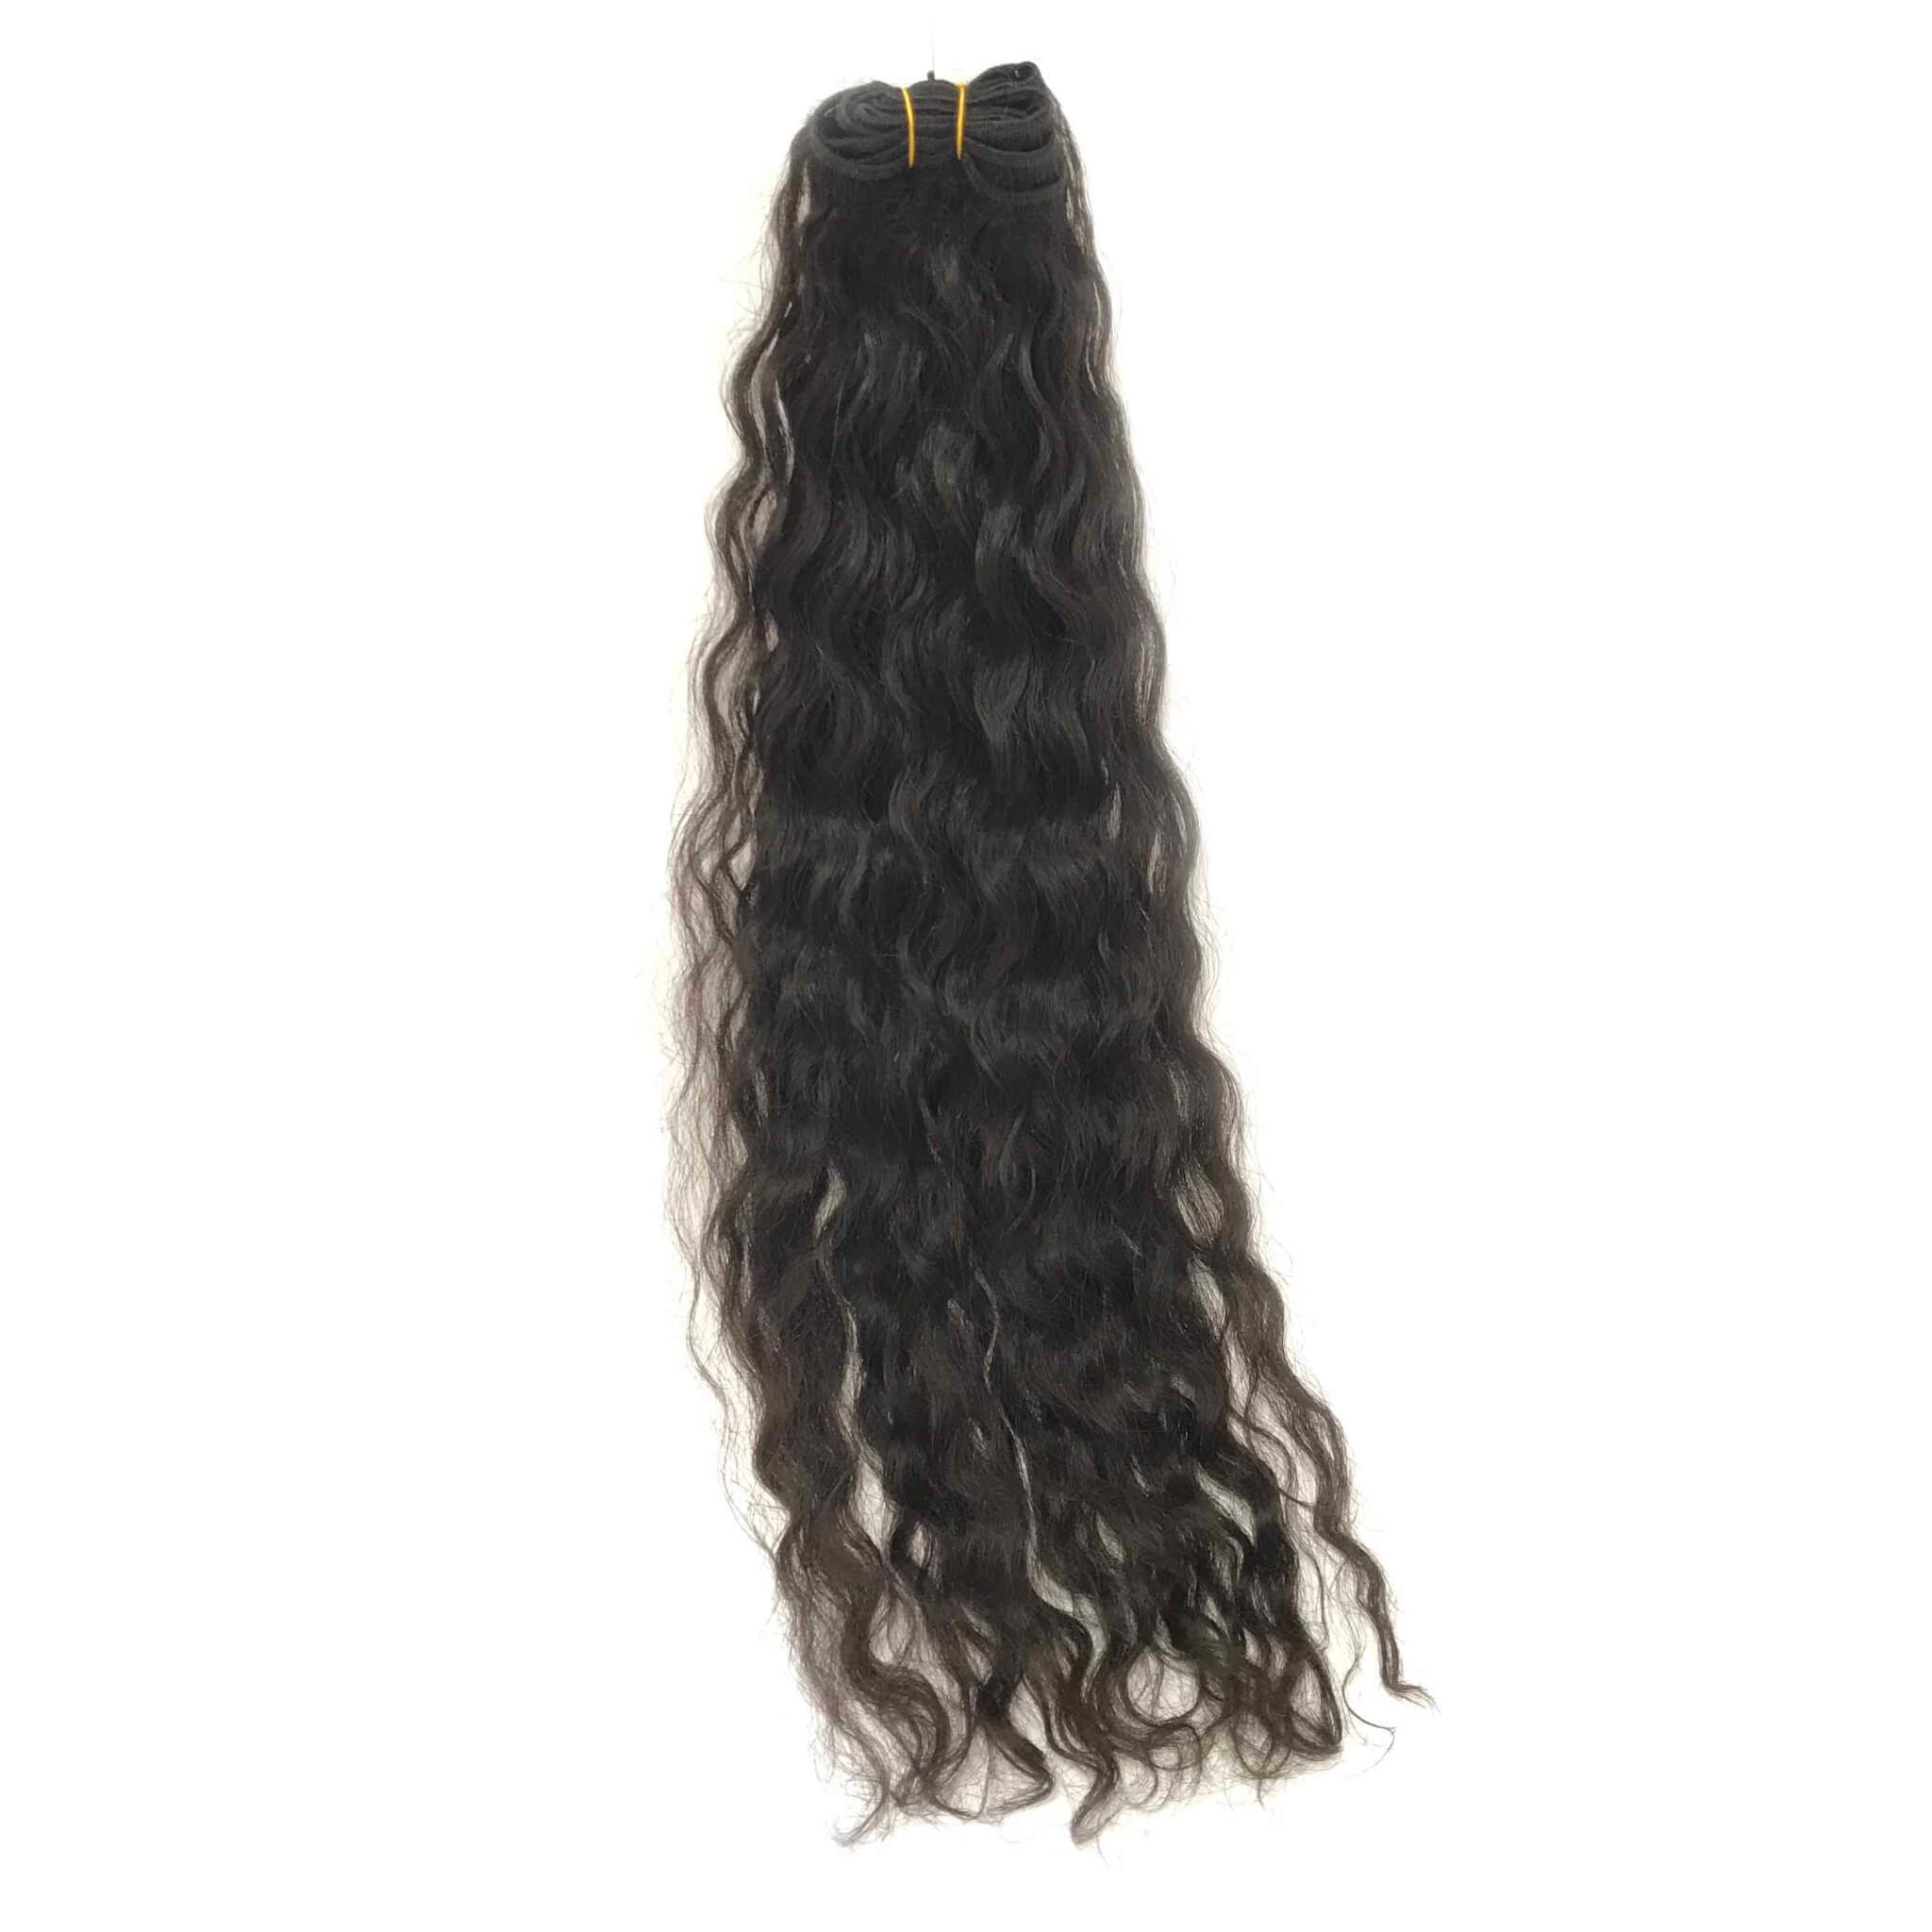 Chantalhair venta de extensiones de cabello y pelo natural - Extensiones de pelo natural cortinas ...